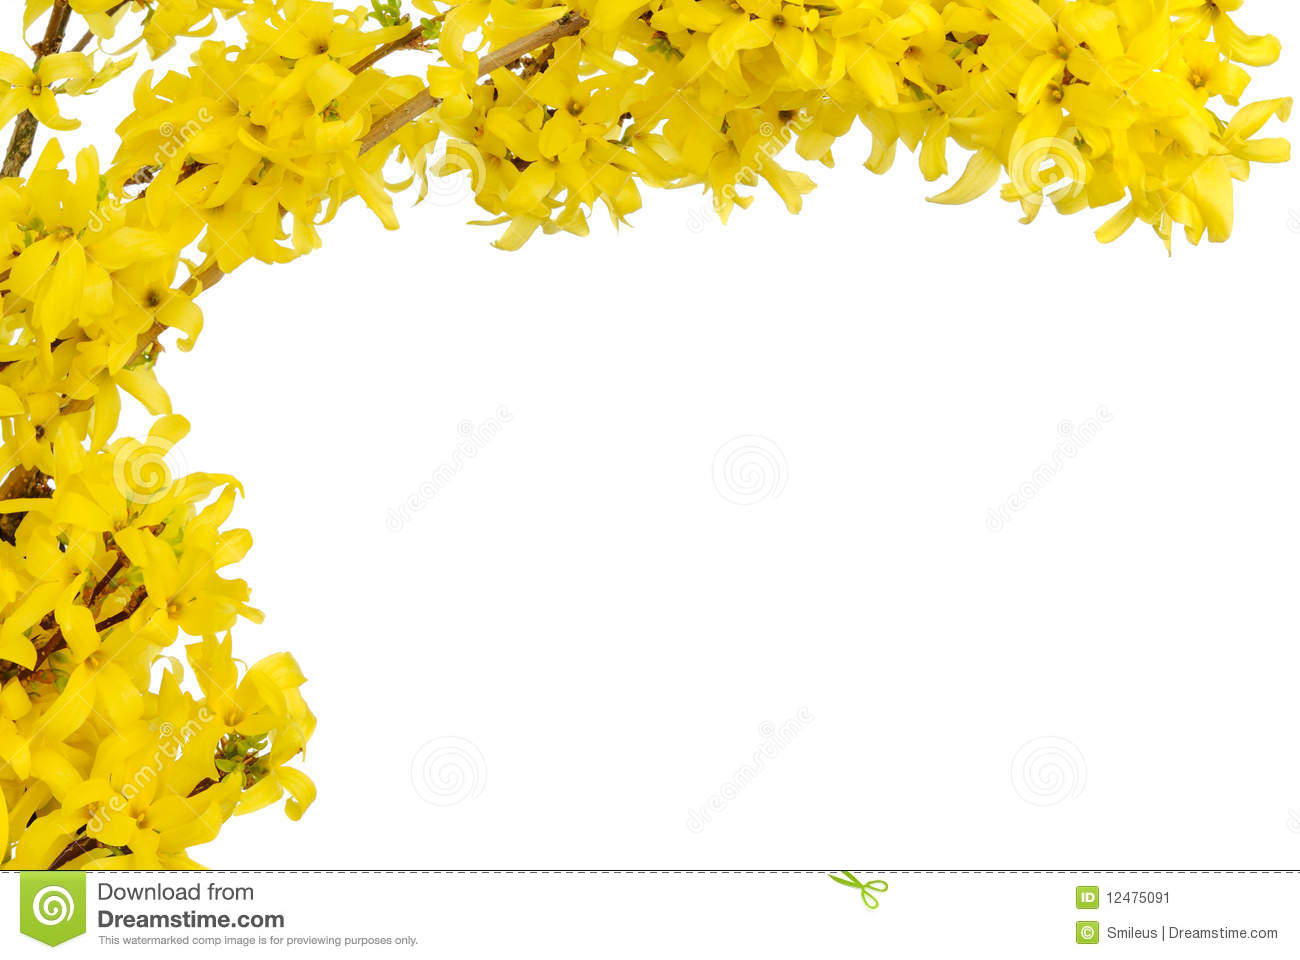 Yellow Spring Blossoms Border Stock Image - Image: 12475091